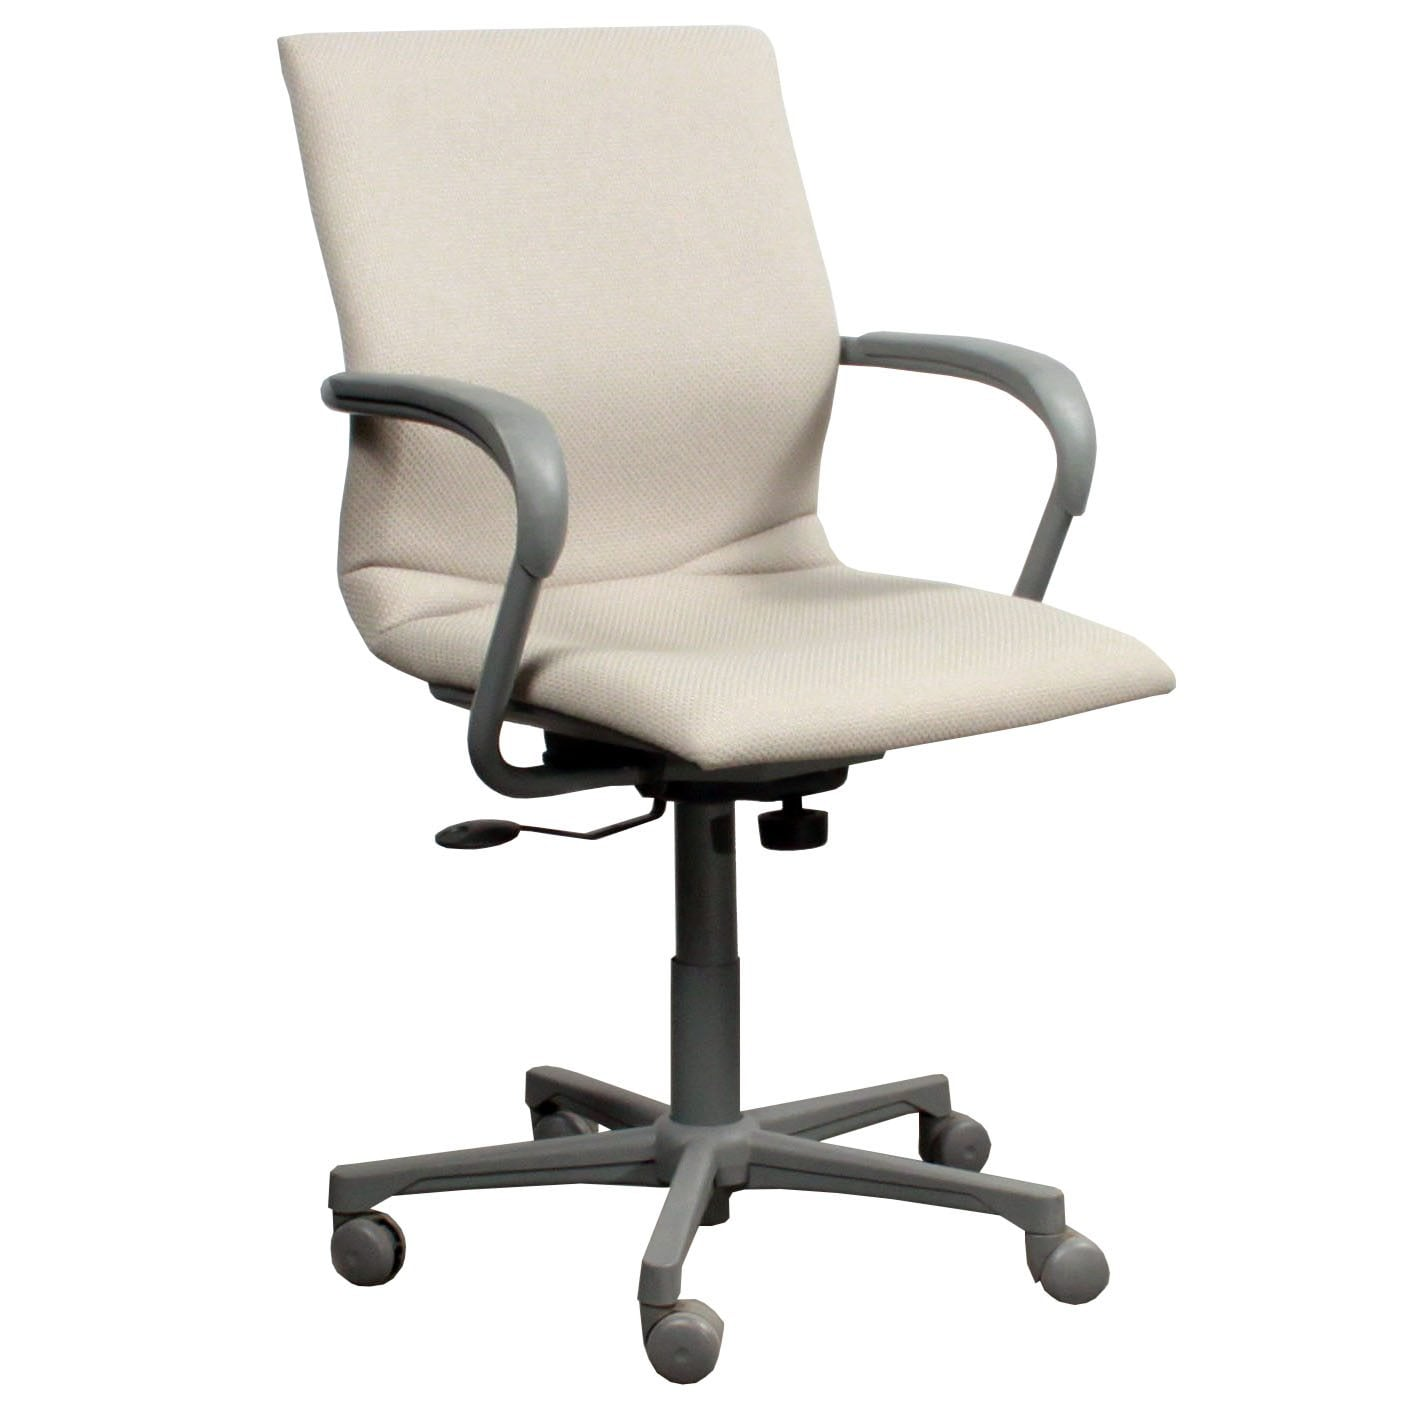 Steelcase Chairs Steelcase Protege 433 Used Conference Chair Creme Design